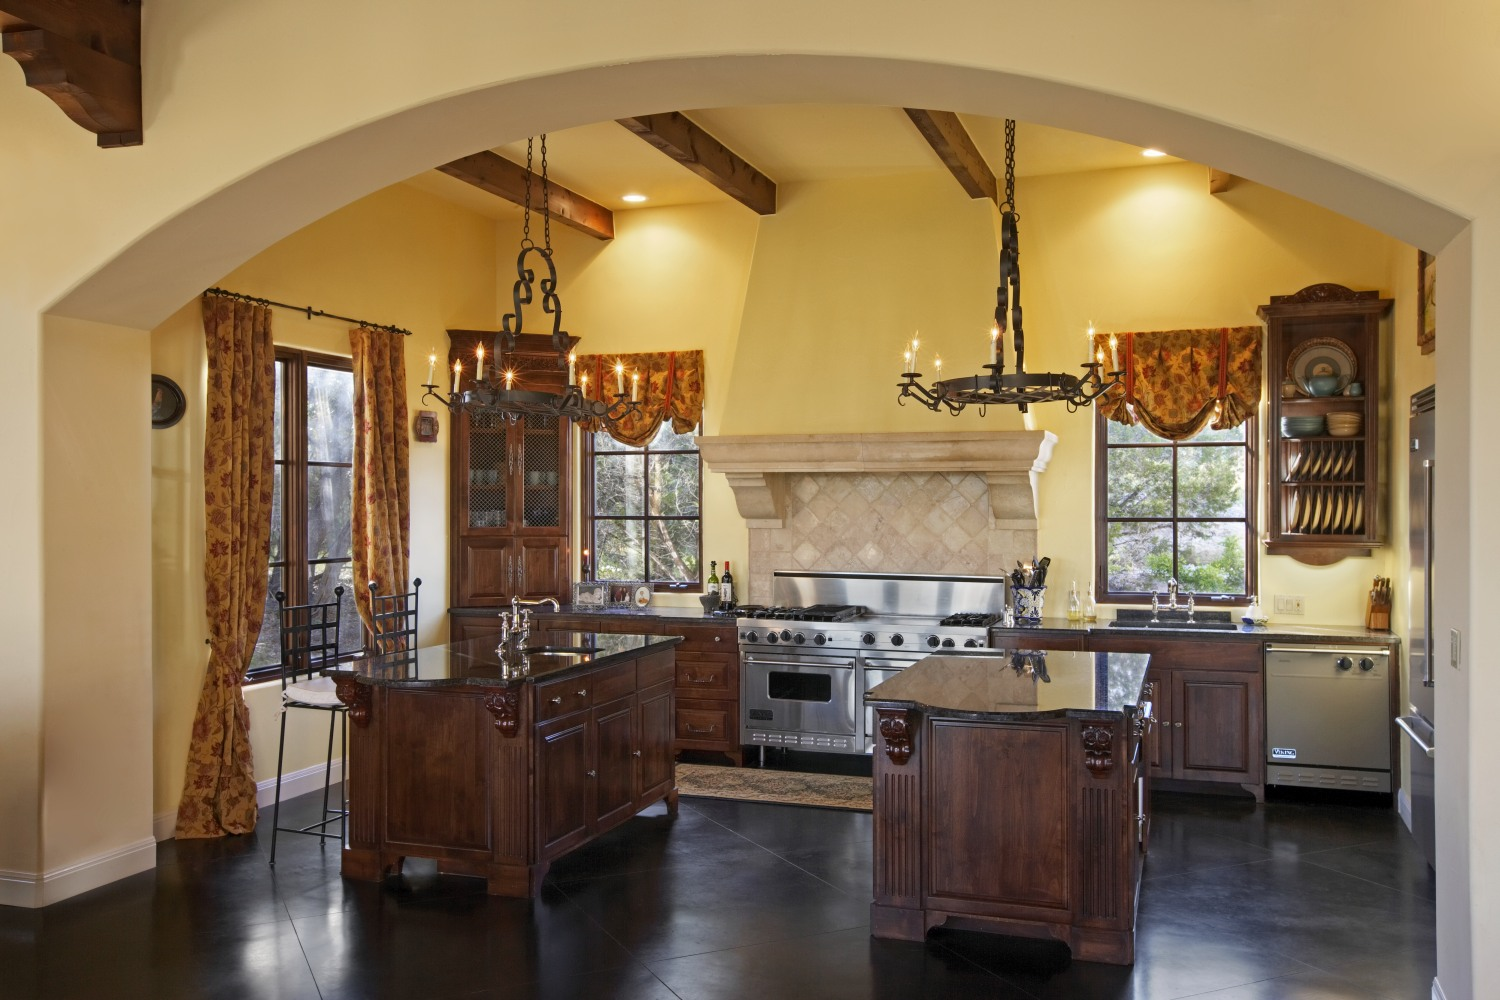 Architecture Home Umbrian Villa kitchen